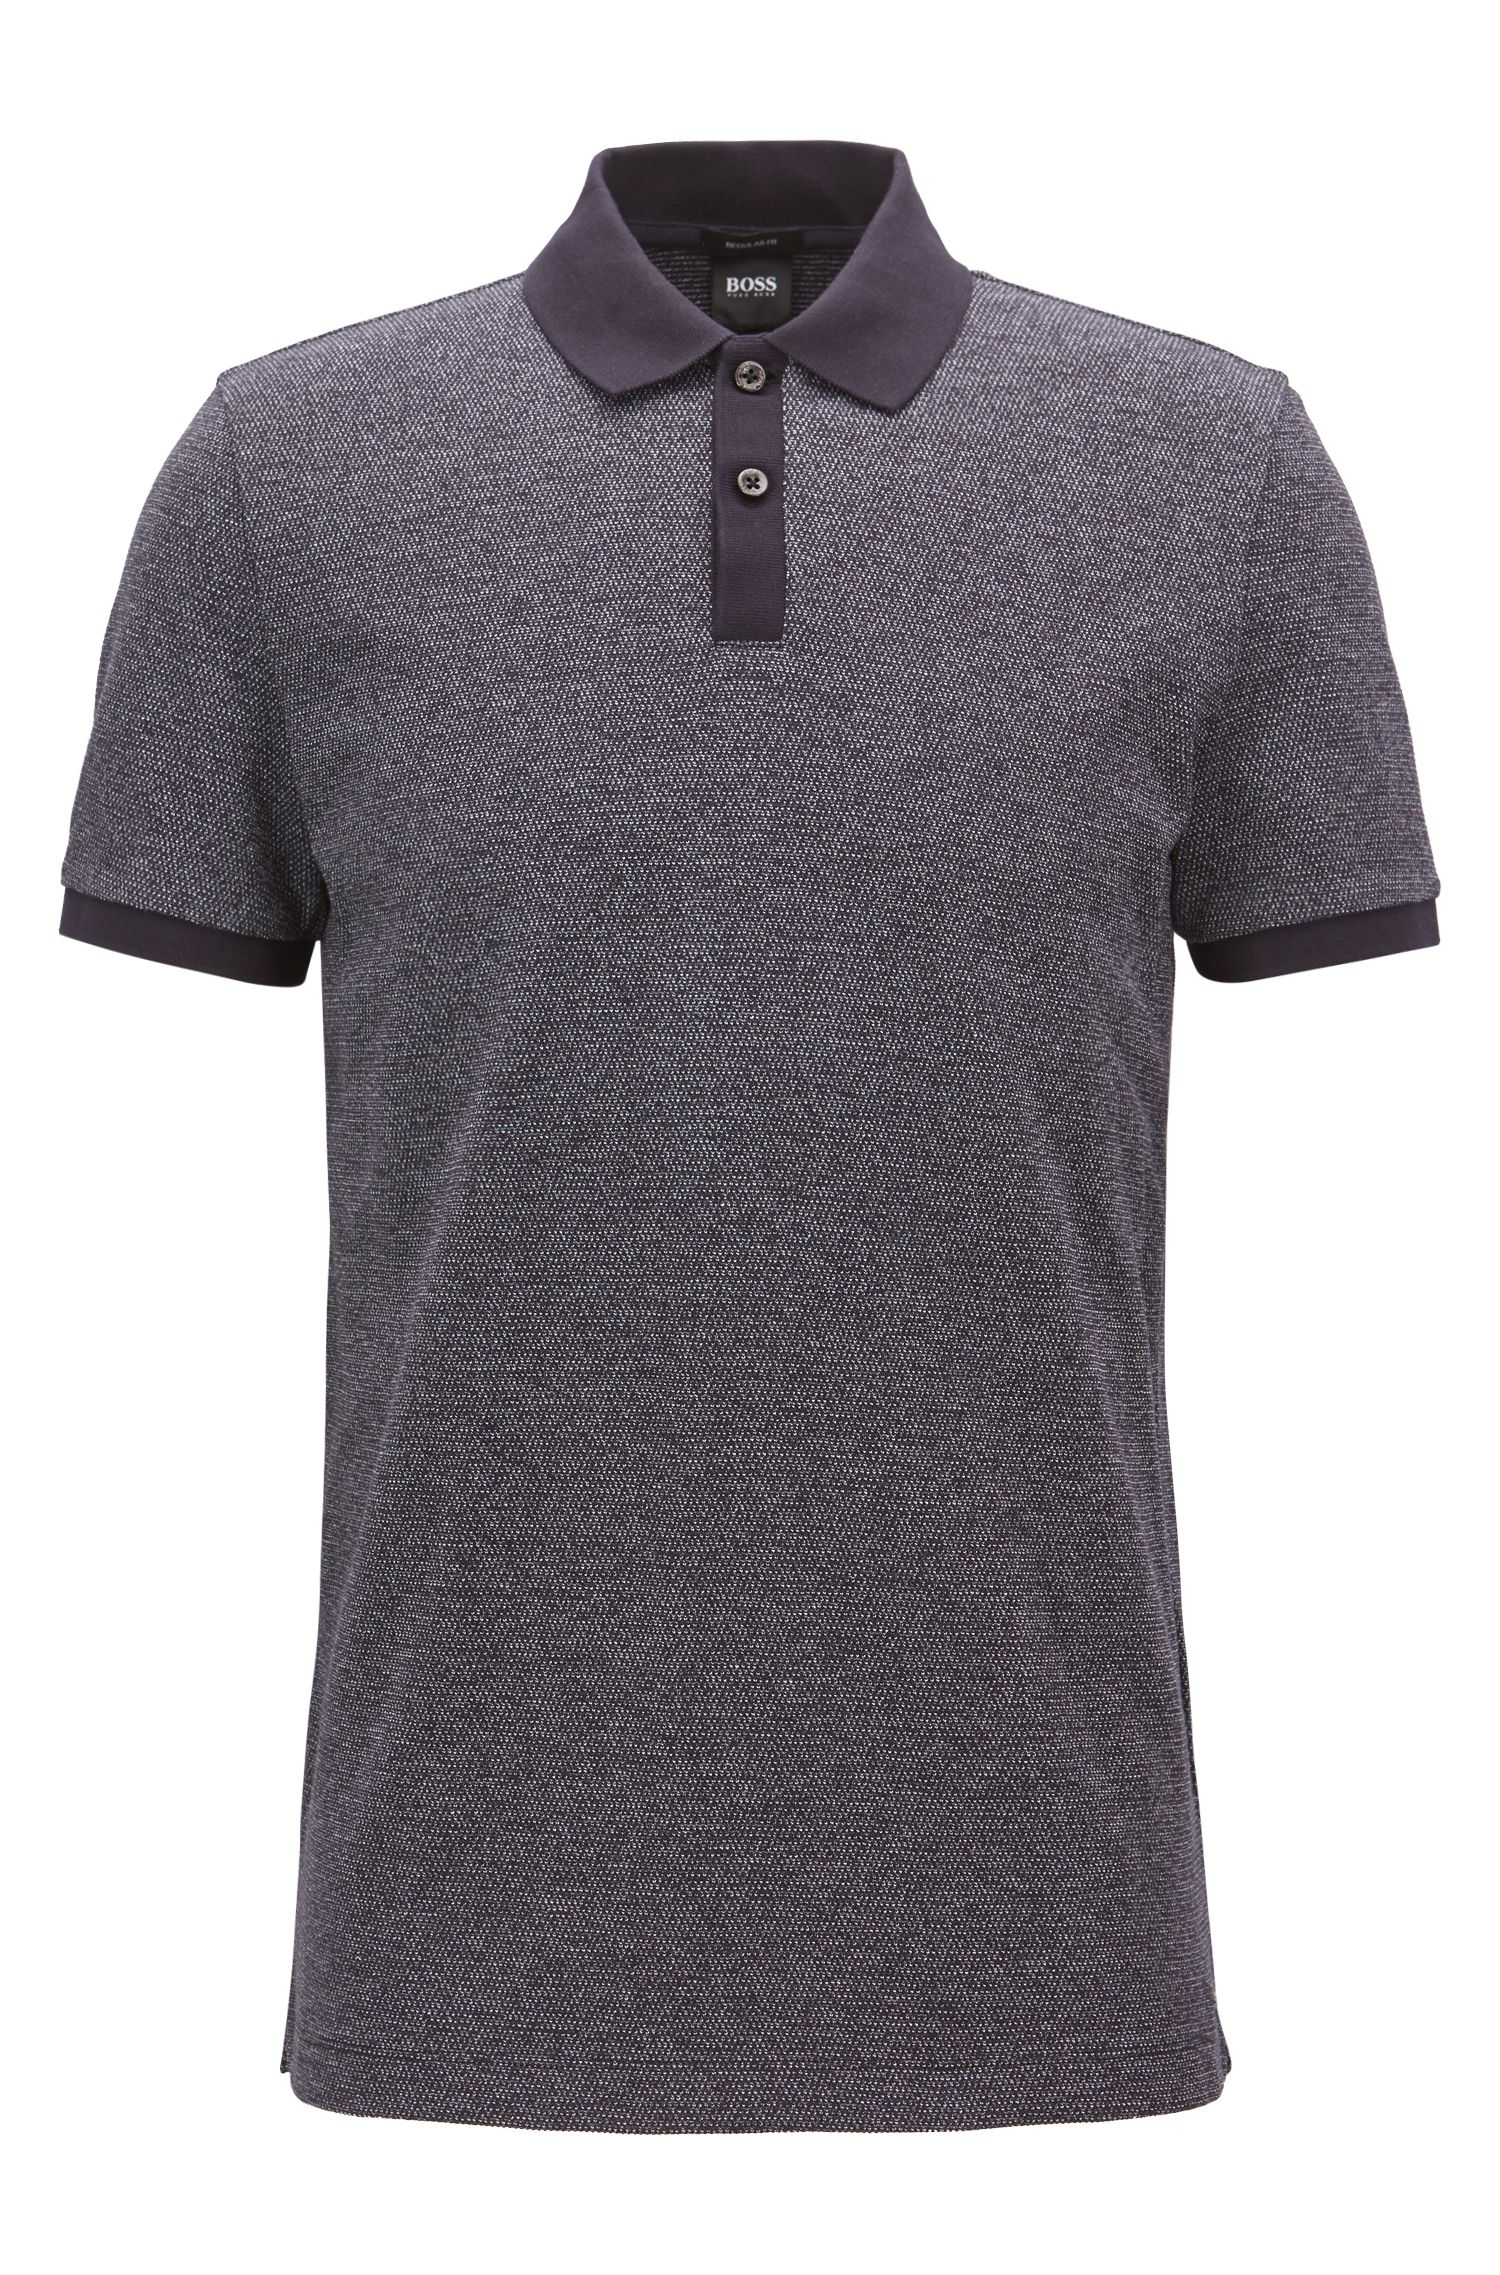 Polo regular fit en jacquard de punto, Azul oscuro